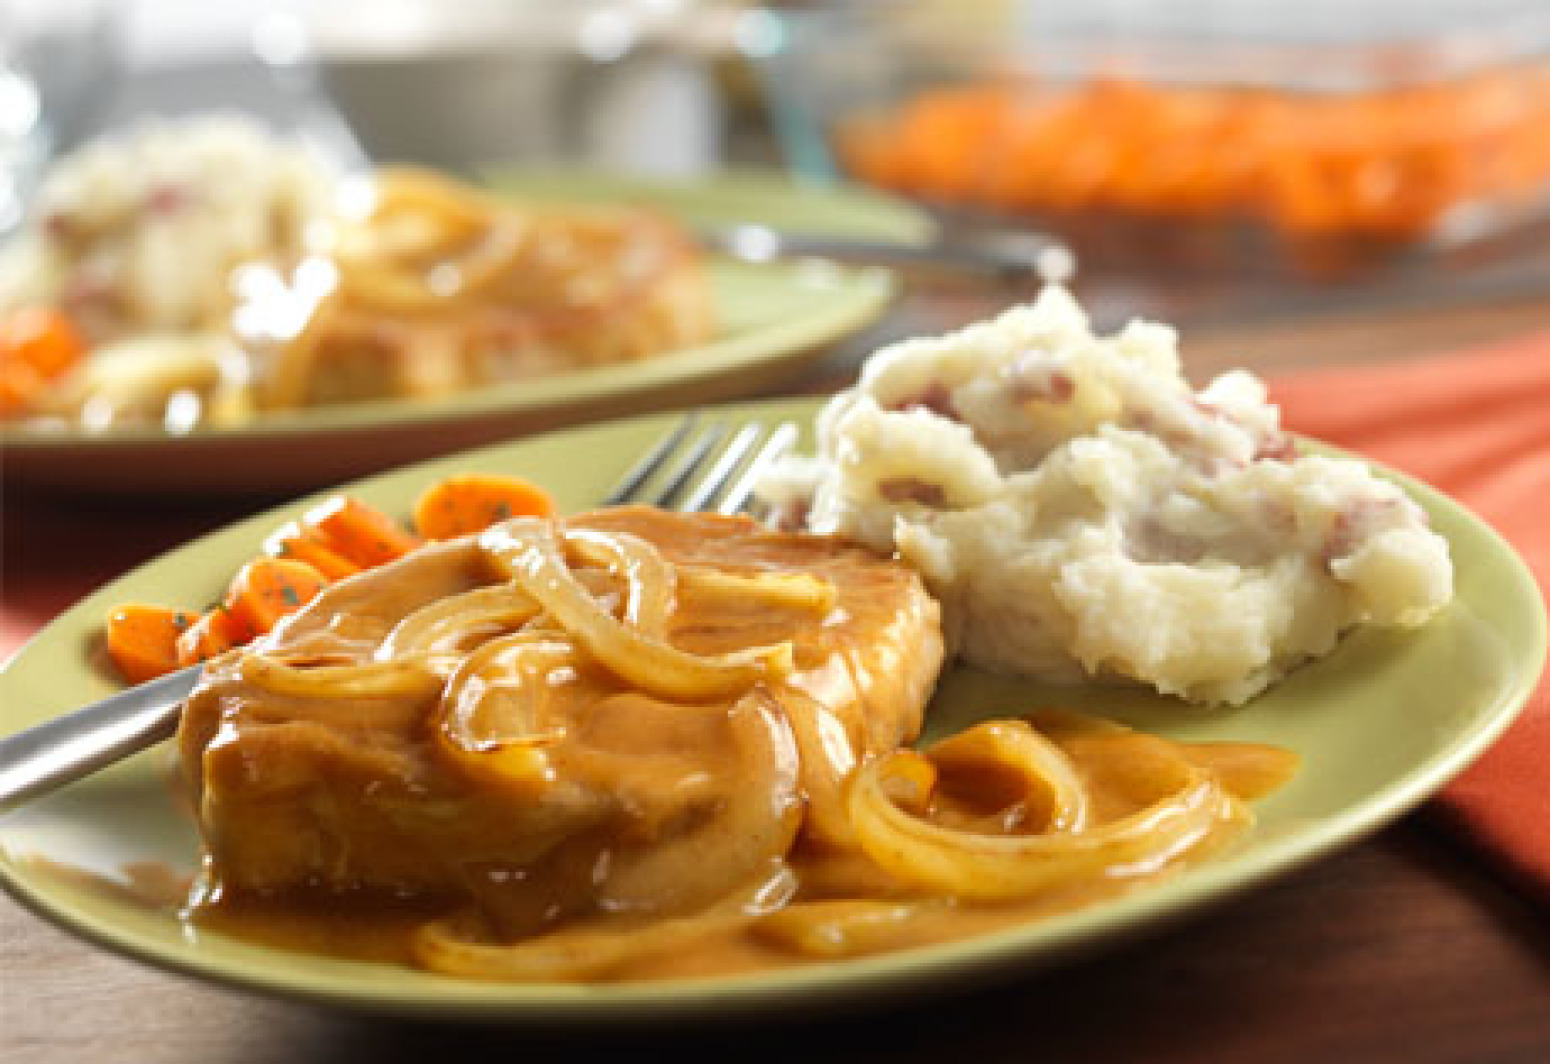 Campbell's Pork Chops and Mustard Onion Gravy Recipe | Just A Pinch Recipes